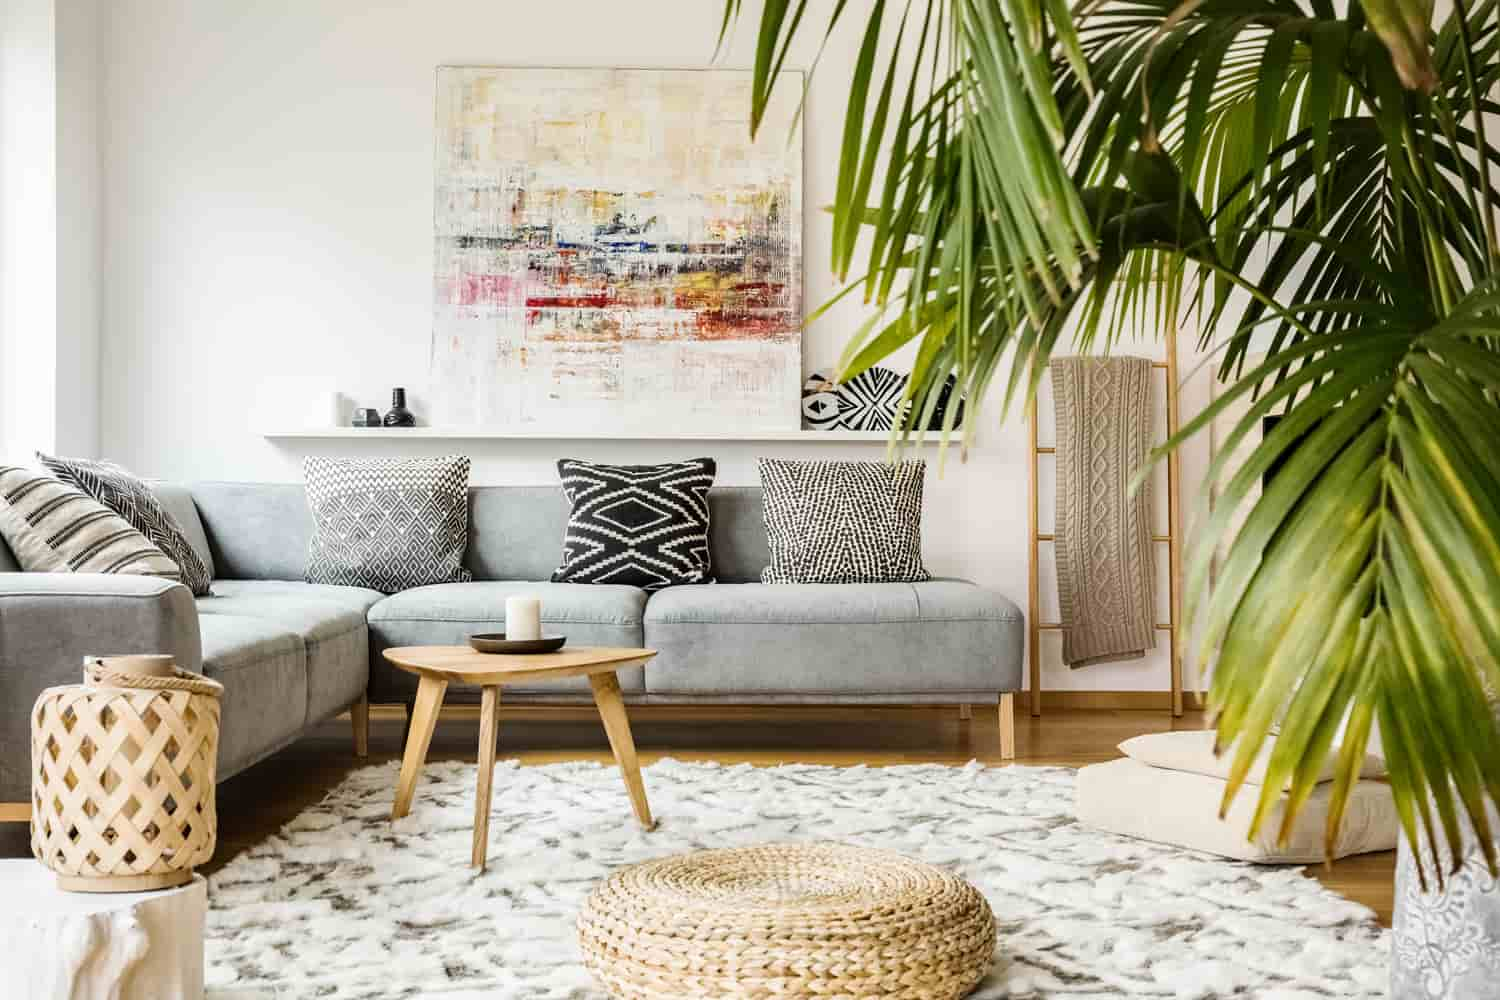 Ways to Improve your Living Space